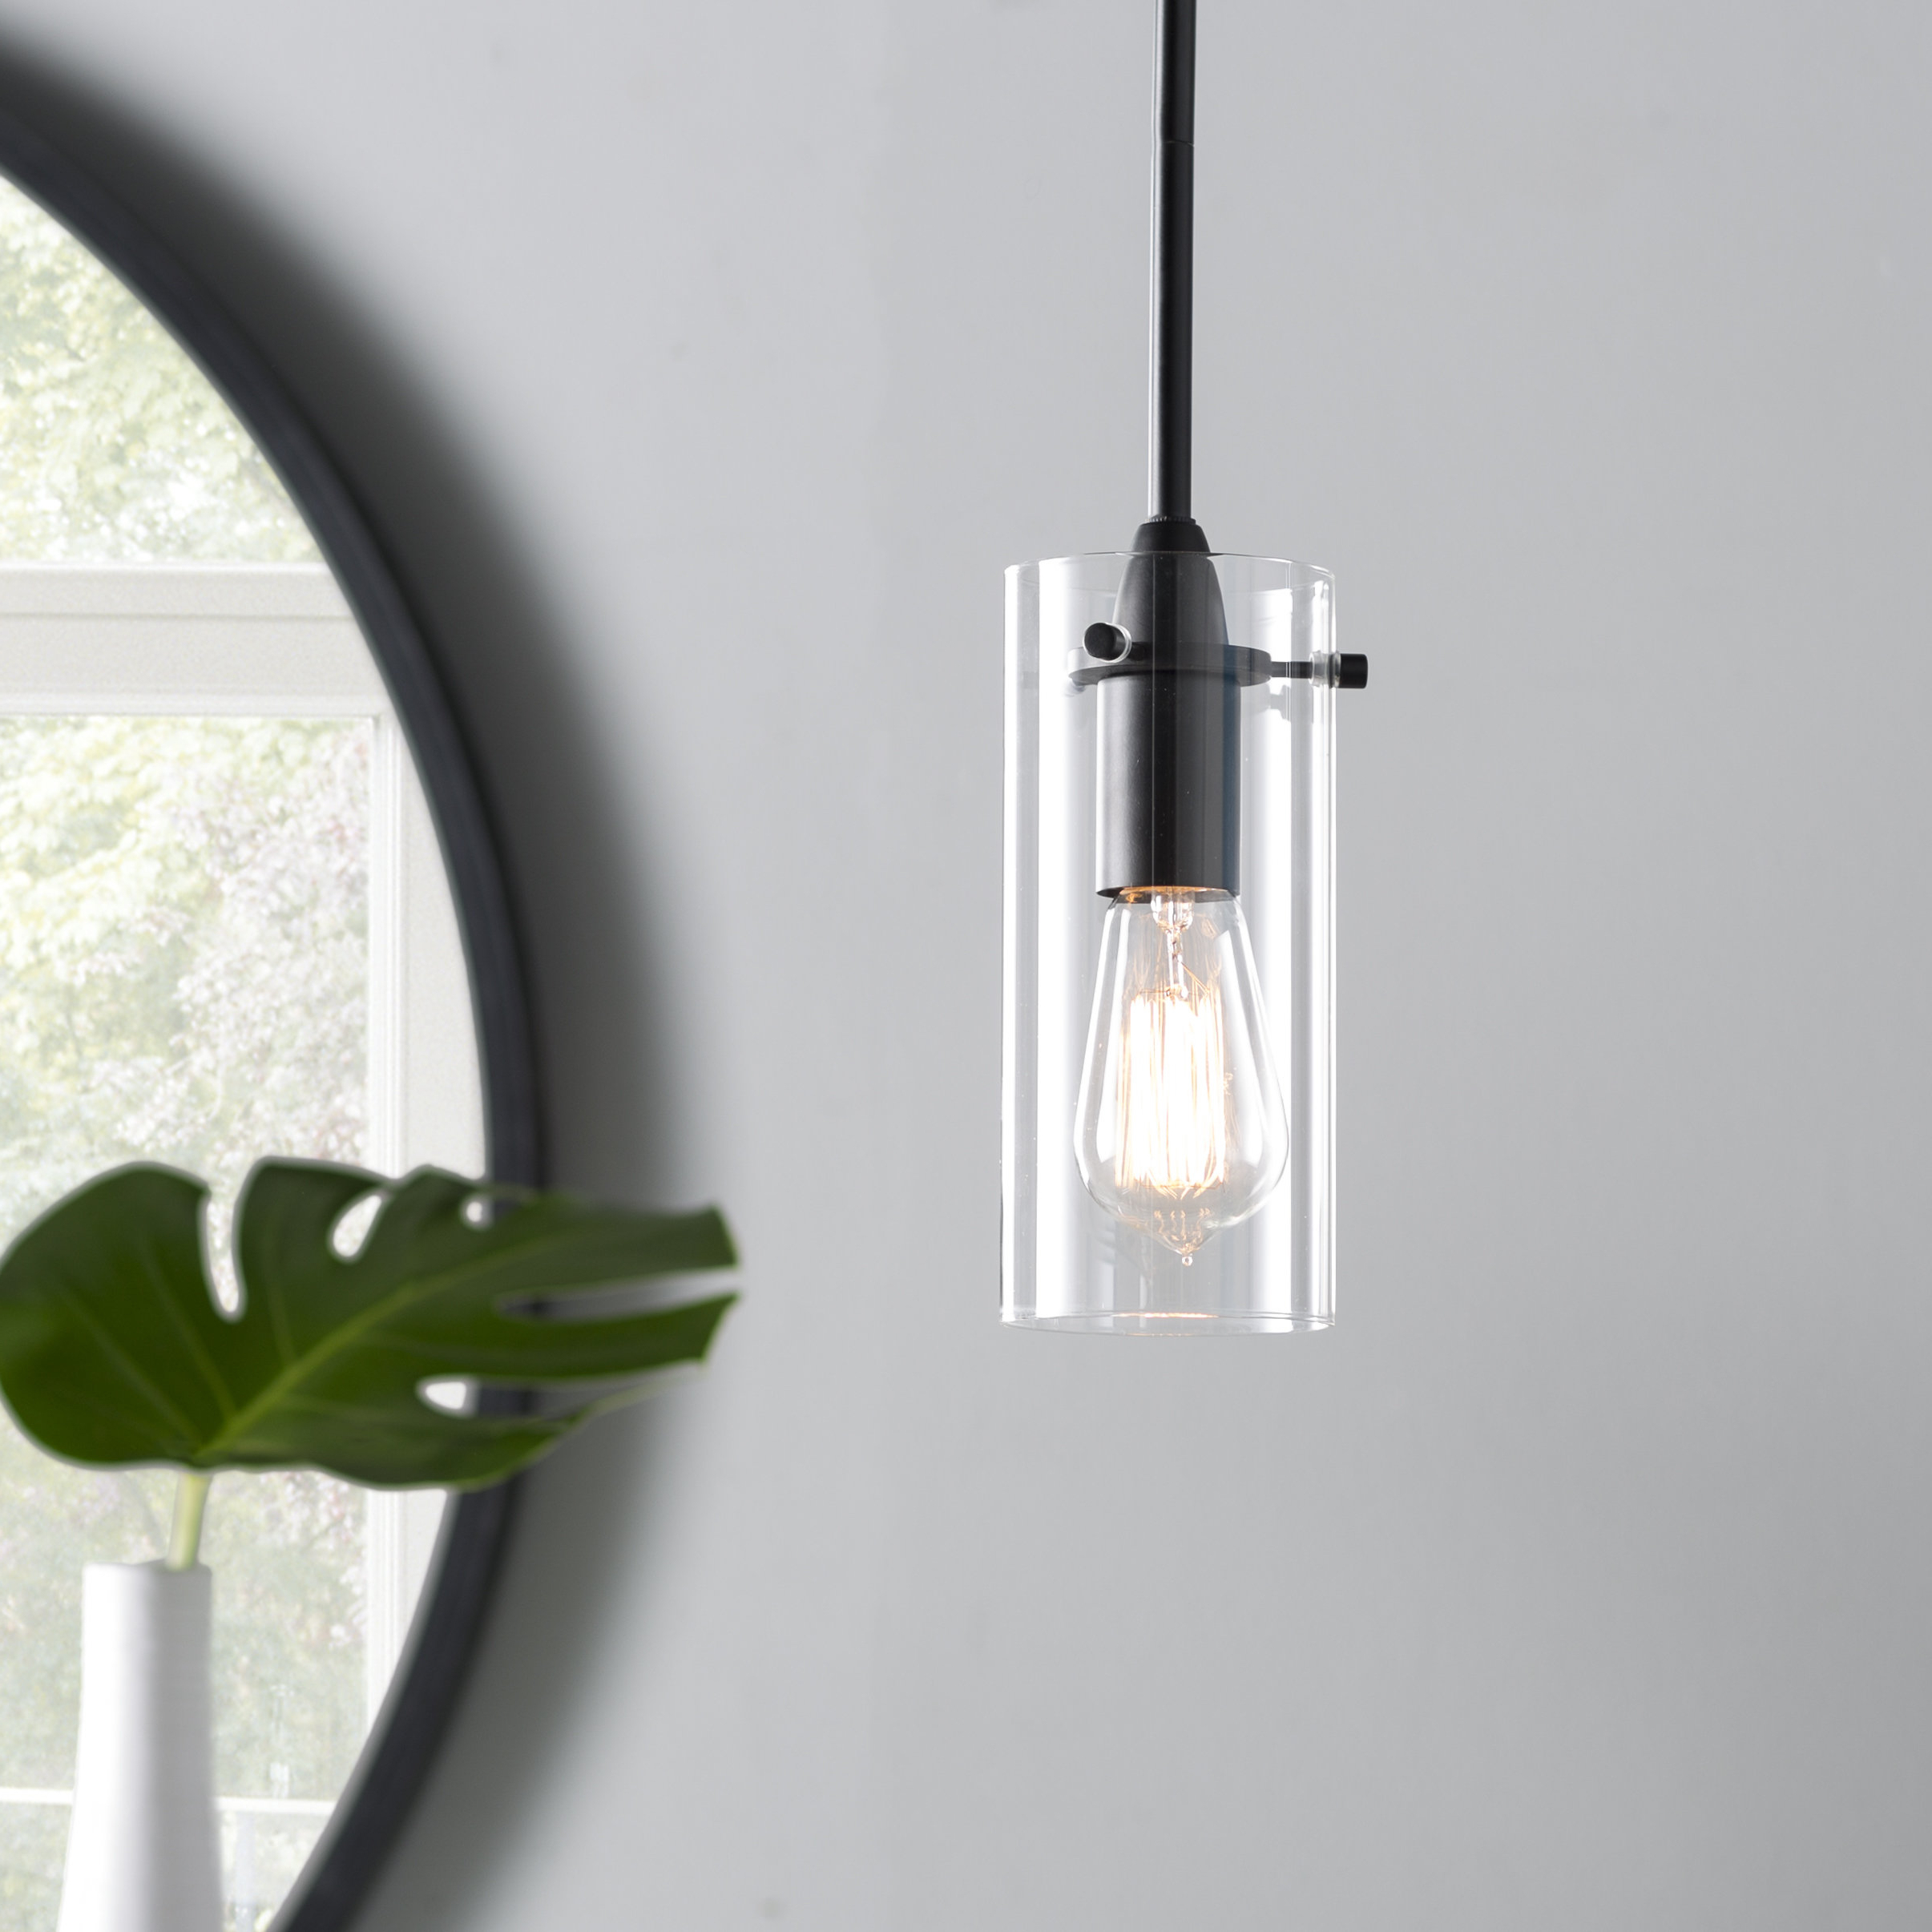 Famous Angelina 1 Light Single Cylinder Pendants With Regard To Angelina 1 Light Single Cylinder Pendant (View 15 of 20)